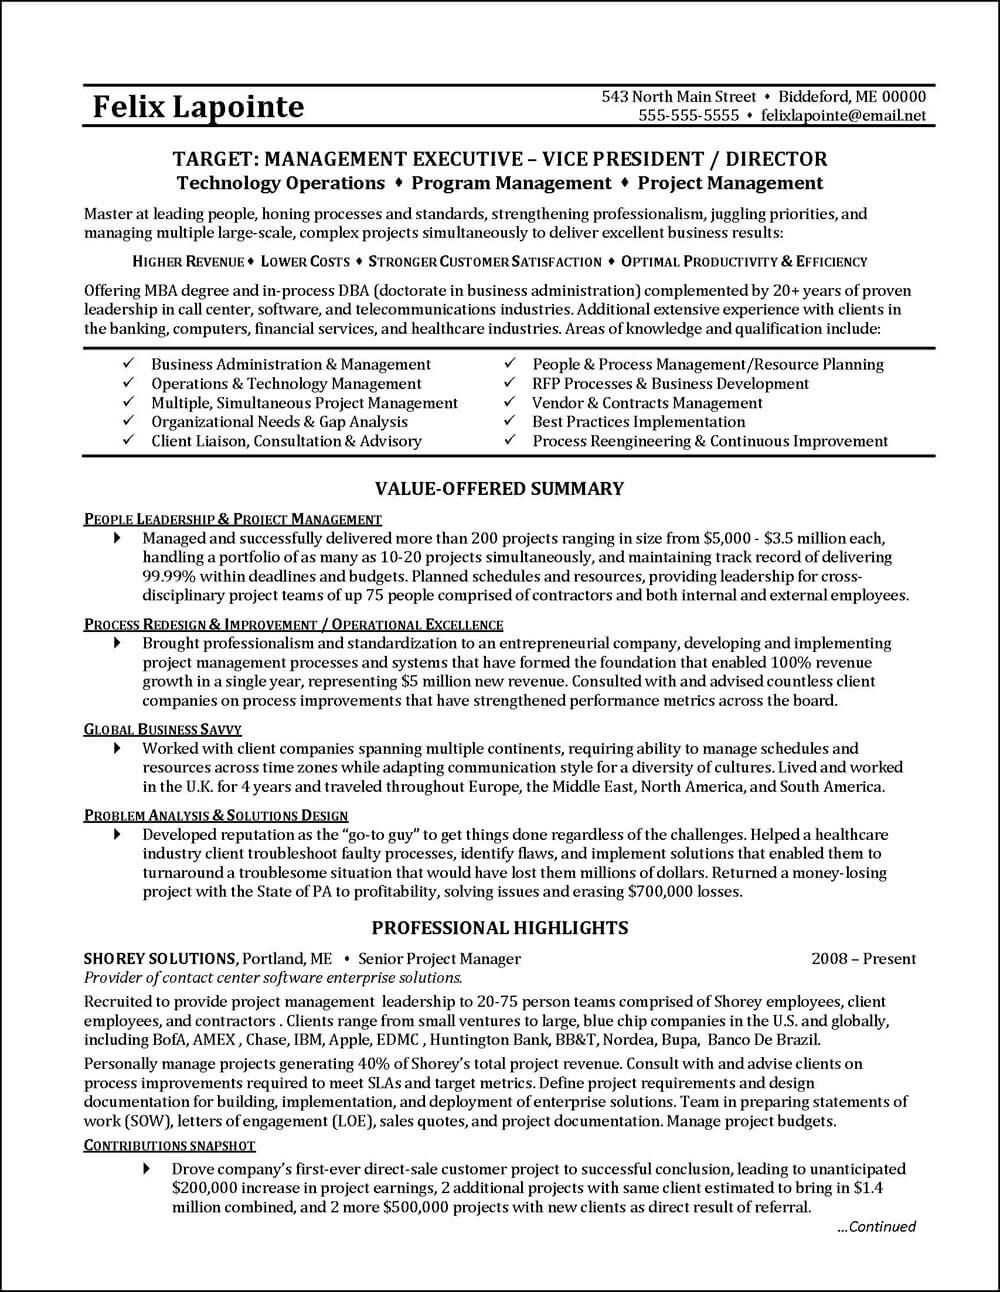 This CLevel Executive Resume Was Professionally Written For A